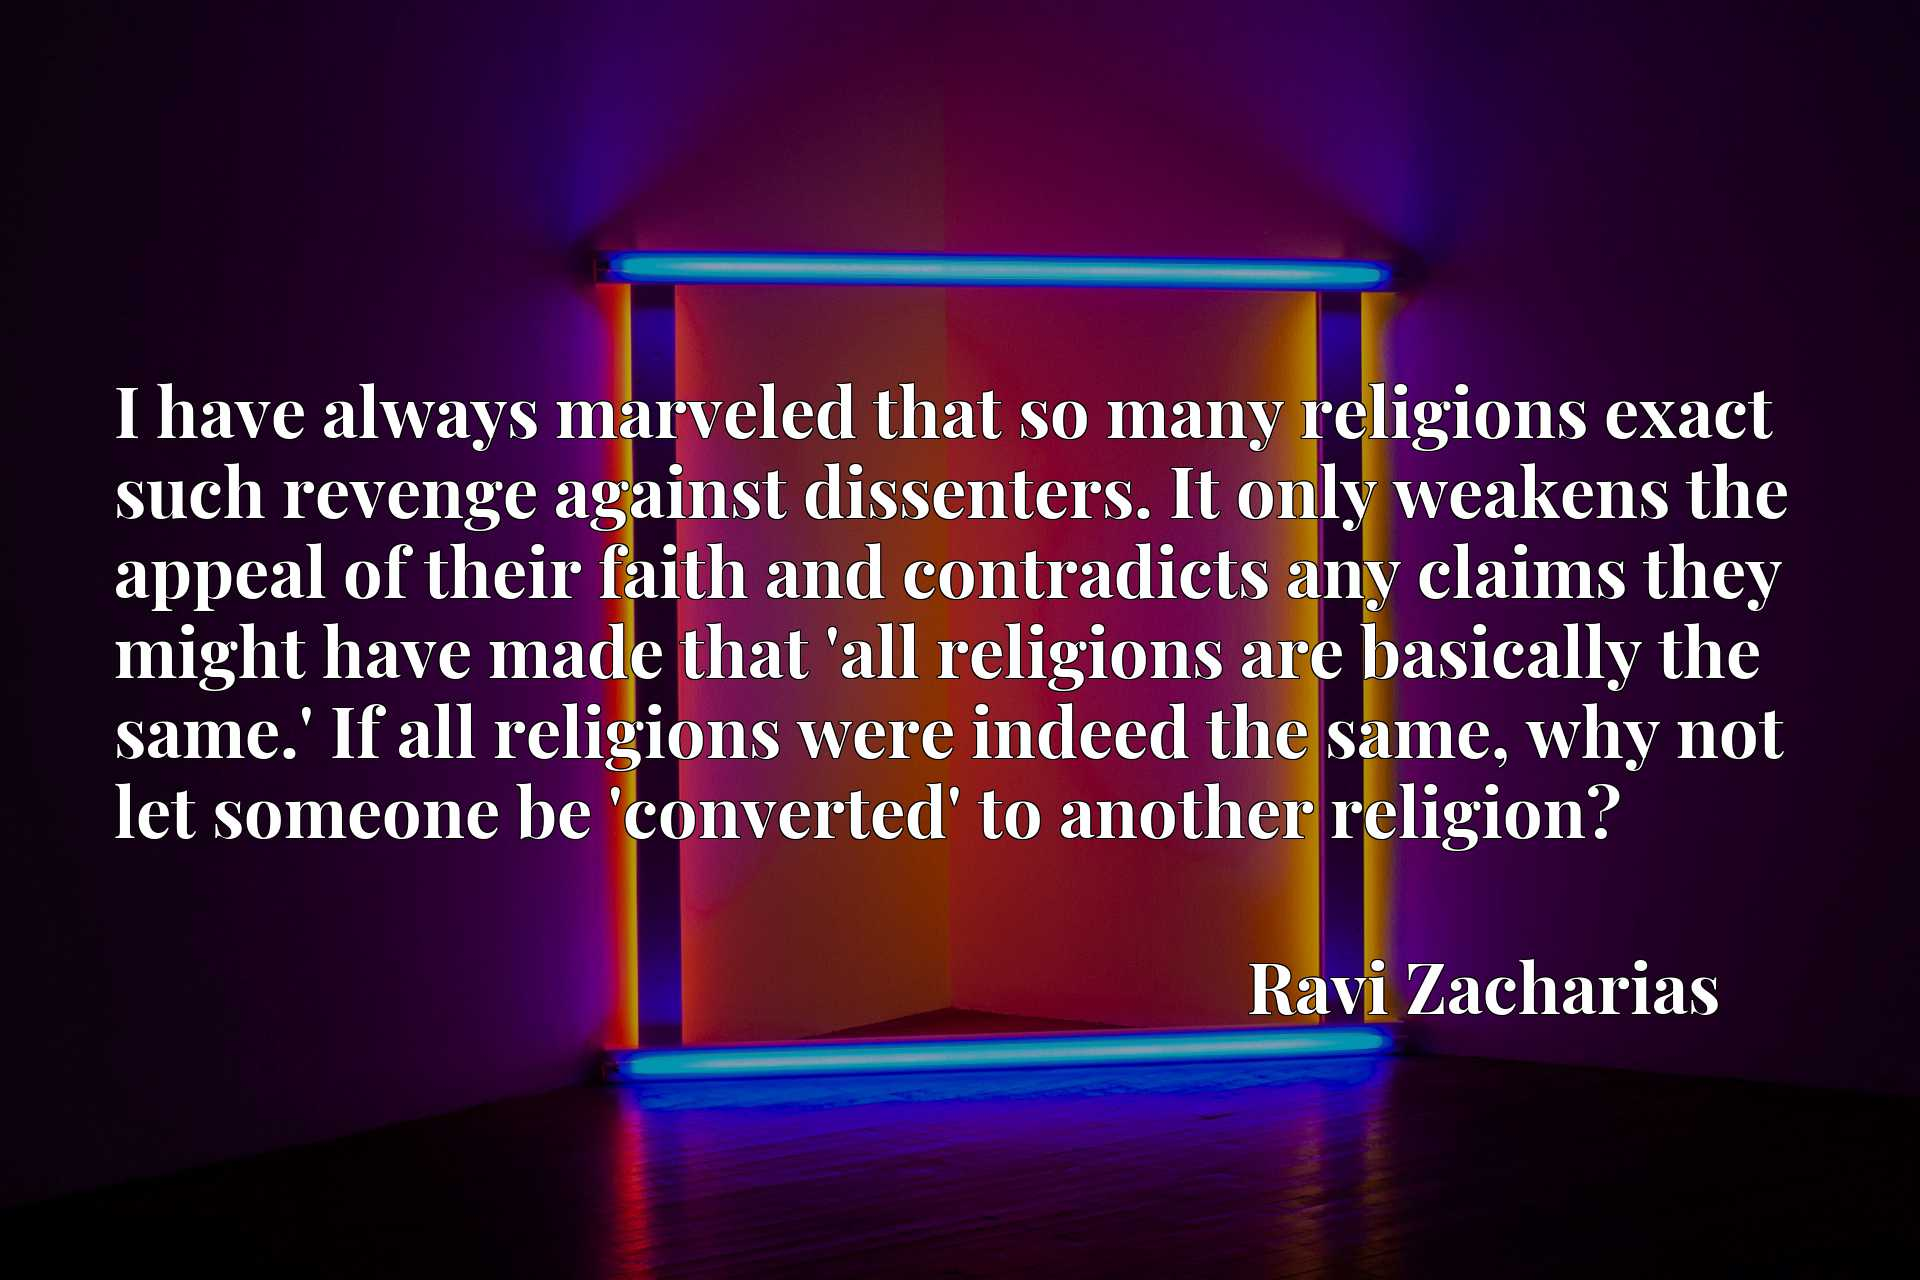 I have always marveled that so many religions exact such revenge against dissenters. It only weakens the appeal of their faith and contradicts any claims they might have made that 'all religions are basically the same.' If all religions were indeed the same, why not let someone be 'converted' to another religion?